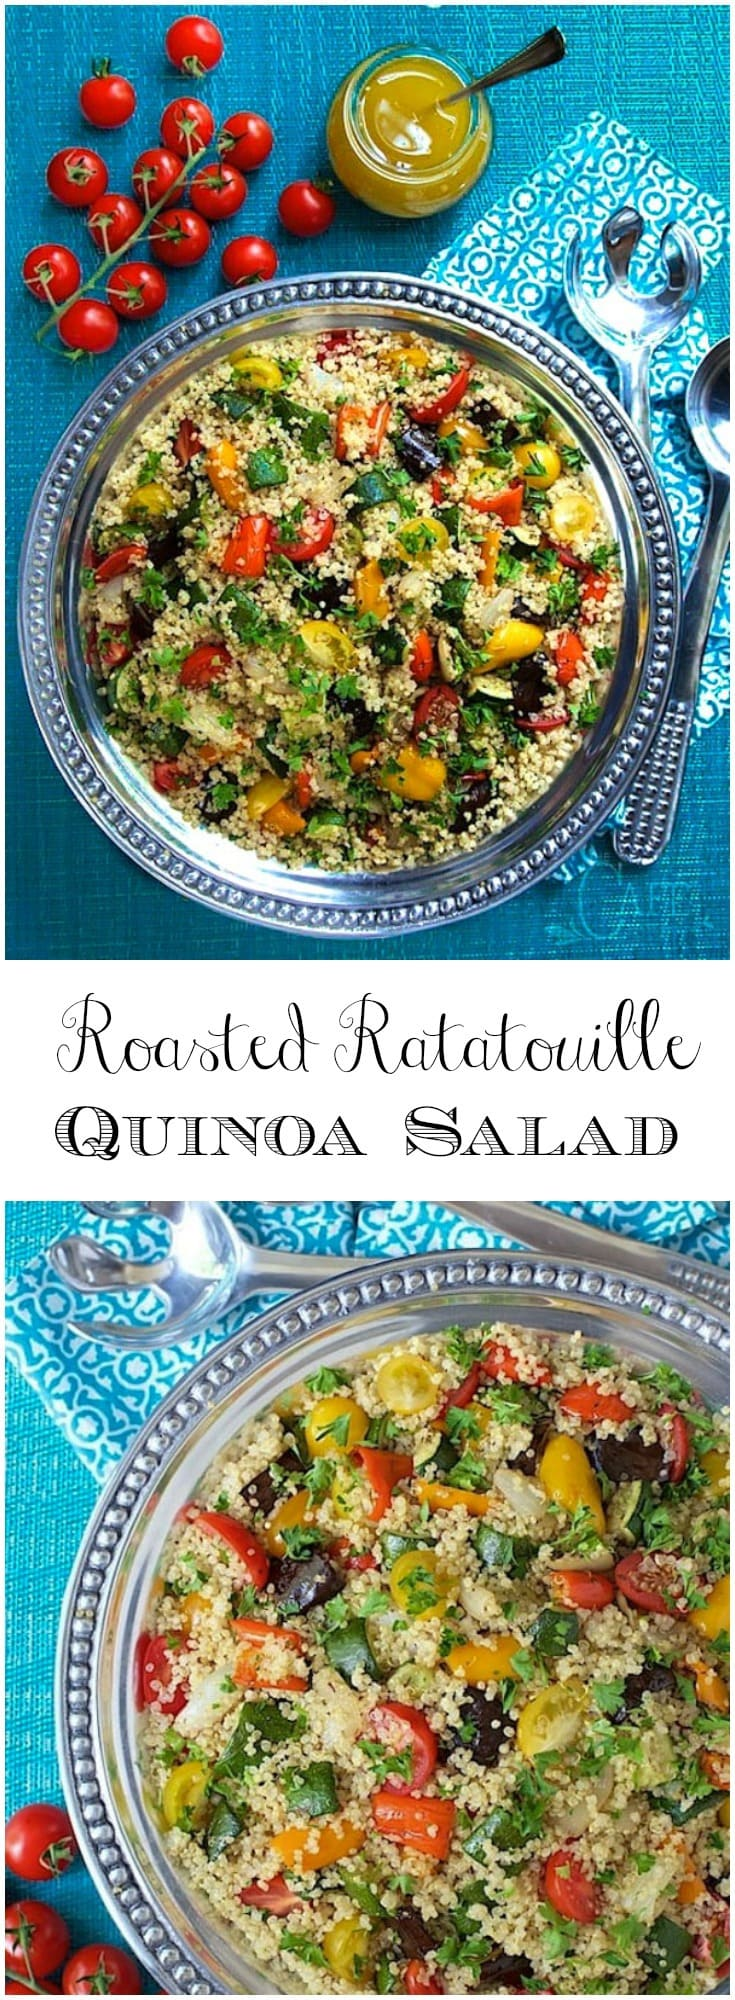 This fabulous Roasted Ratatouille Quinoa Salad is loaded with healthy veggies and makes a perfect side for any grilled or roasted entree